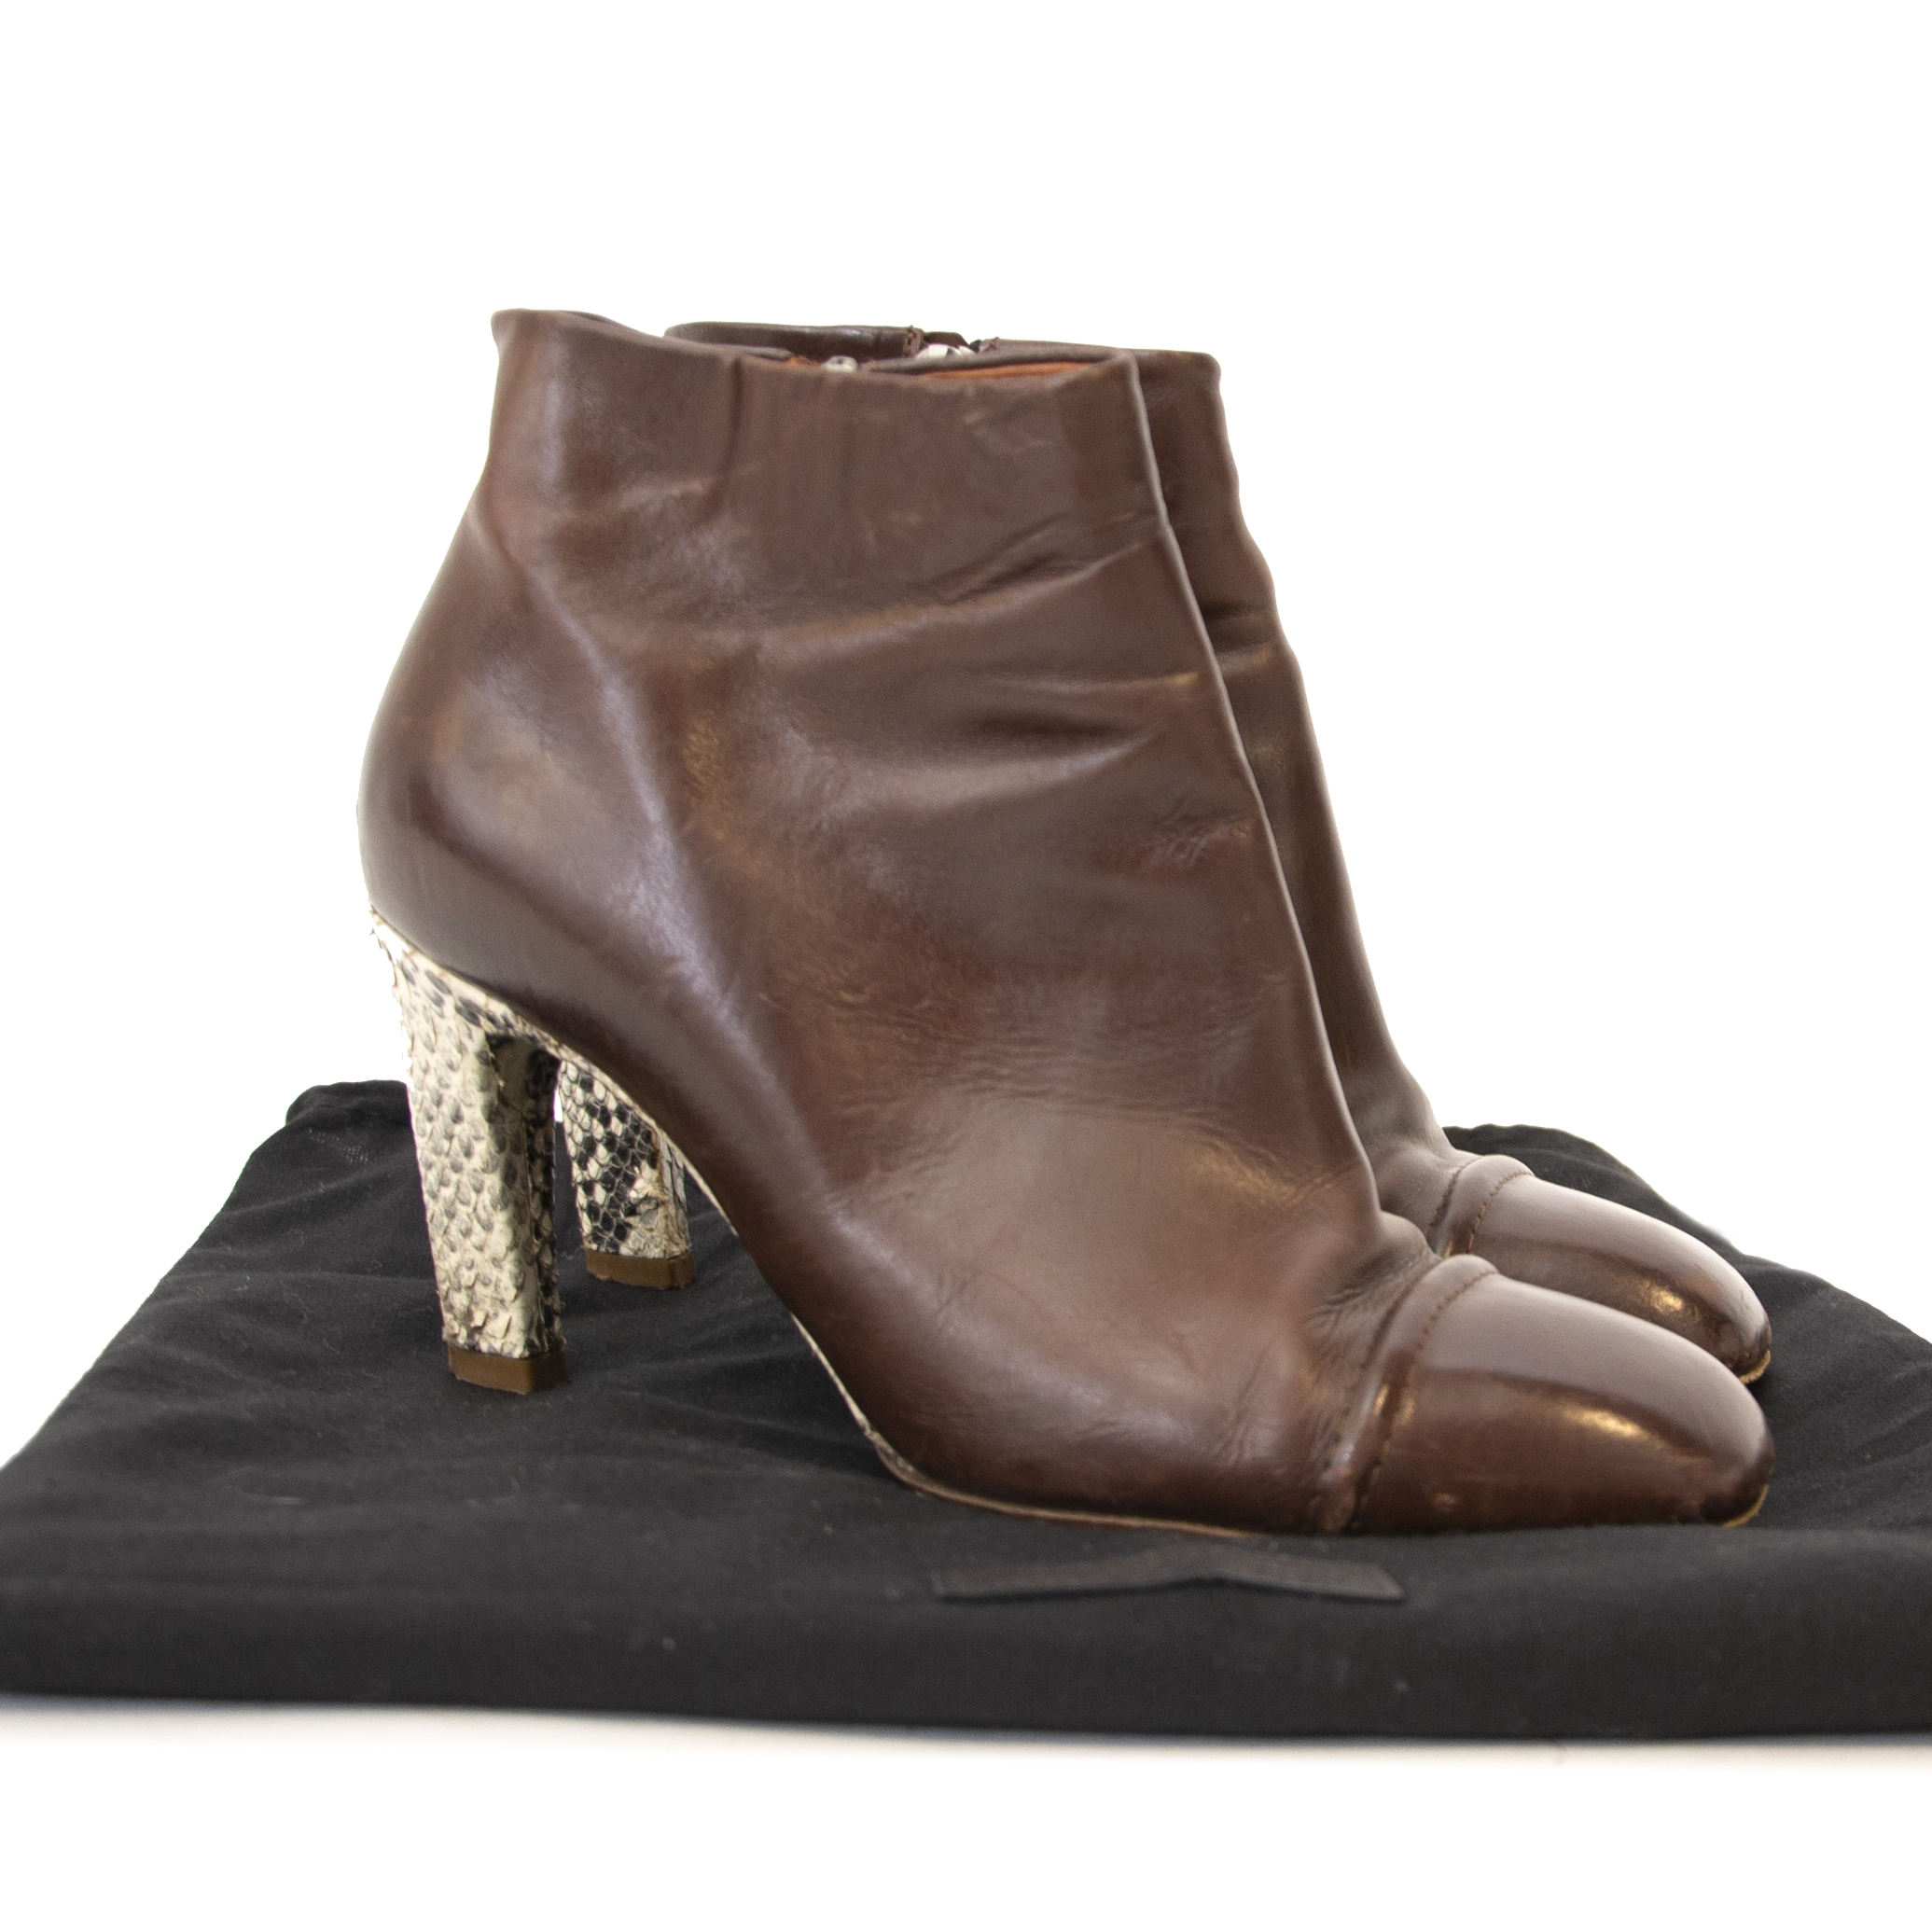 Dries Van Noten Brown Python Ankle Boots at Labellov. Online webshop vintage designer handbags